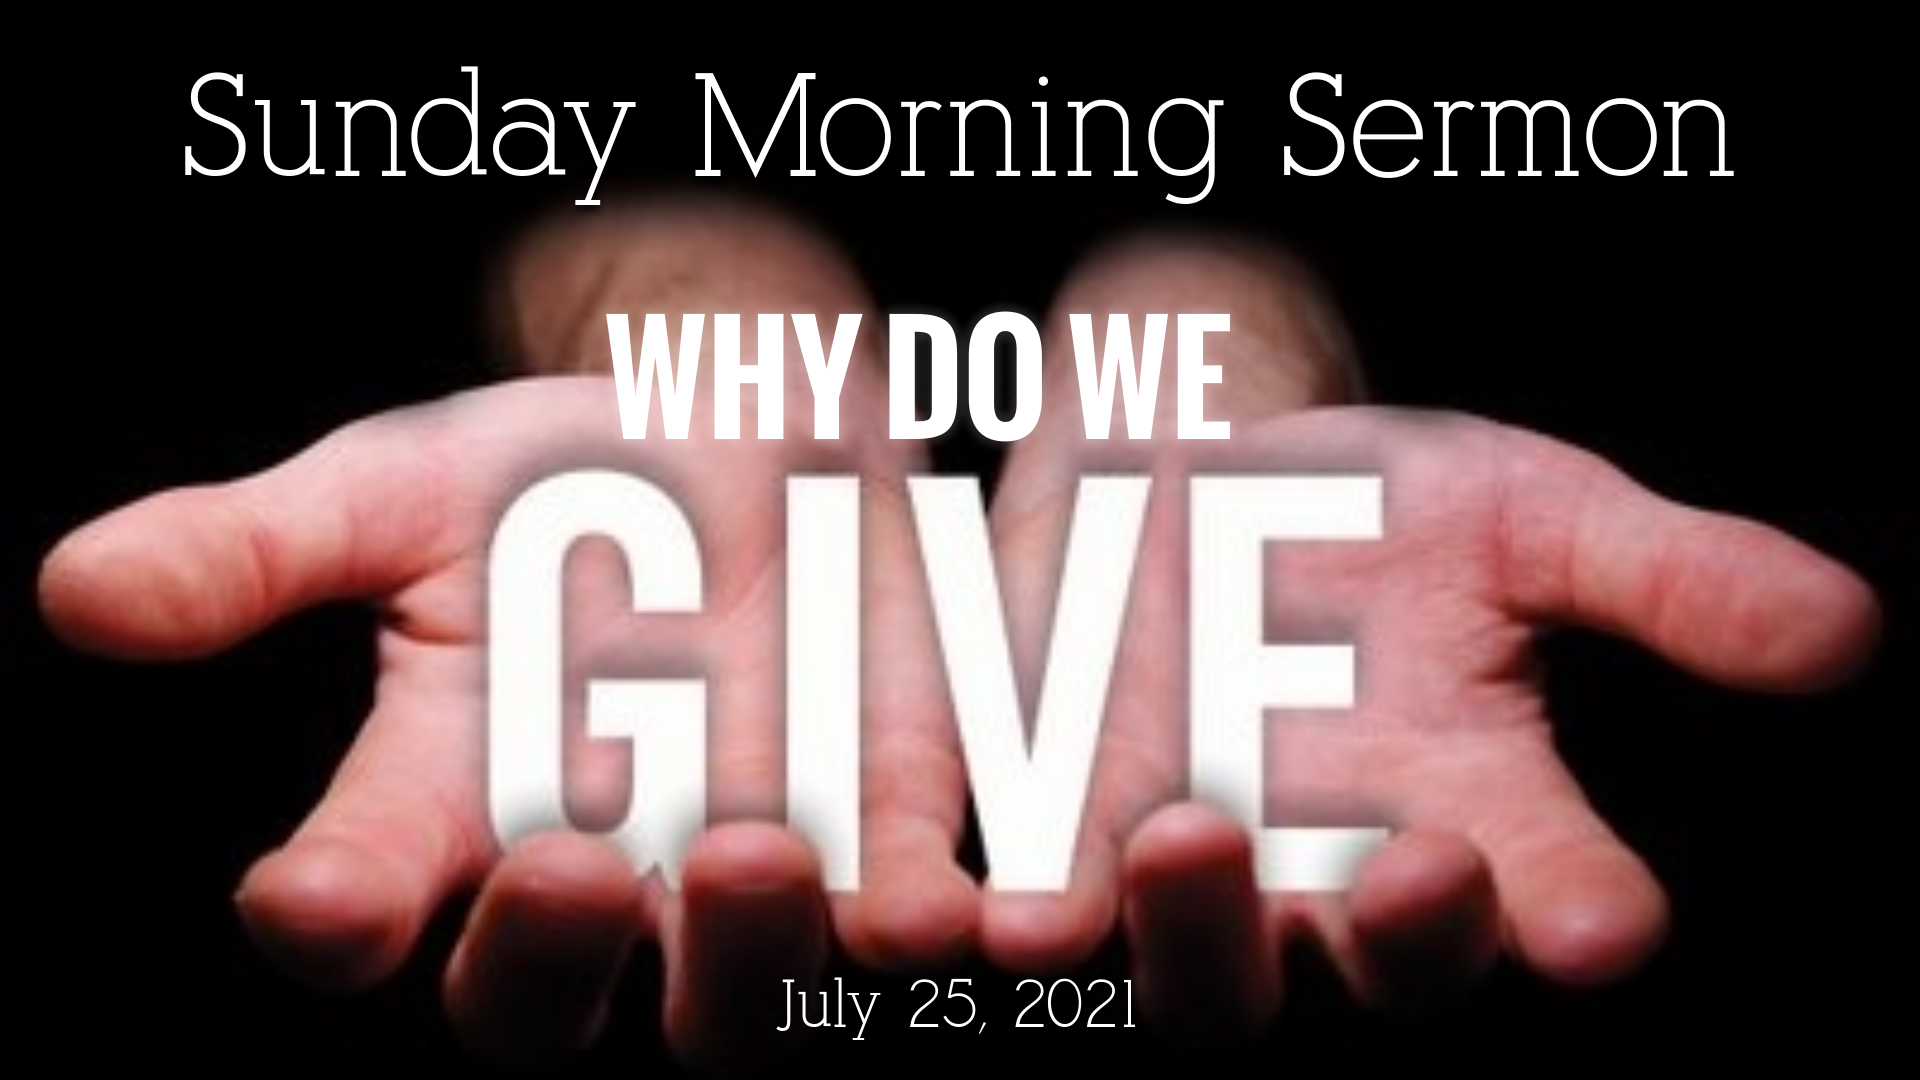 Why Do We Give?